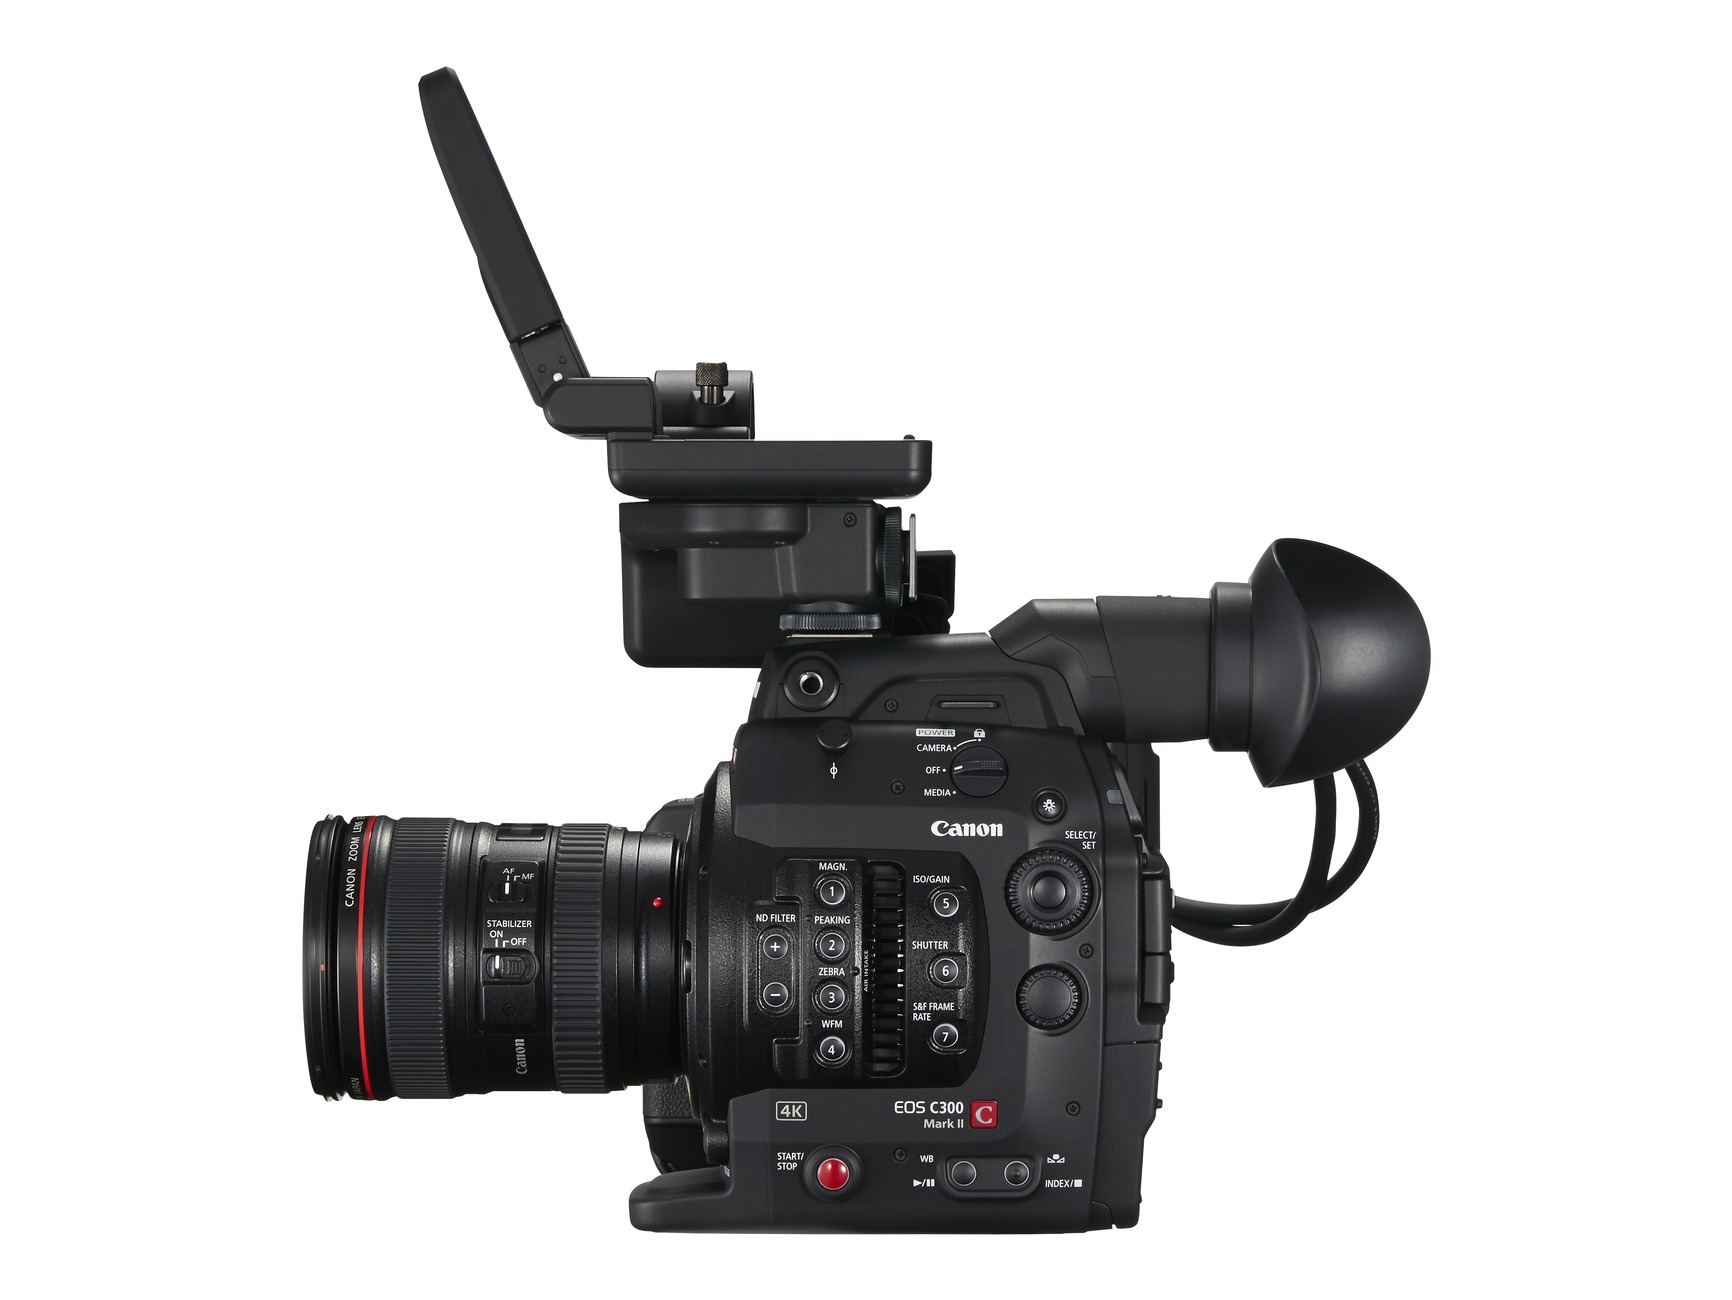 New Canon EOS C300 Mark II Left view